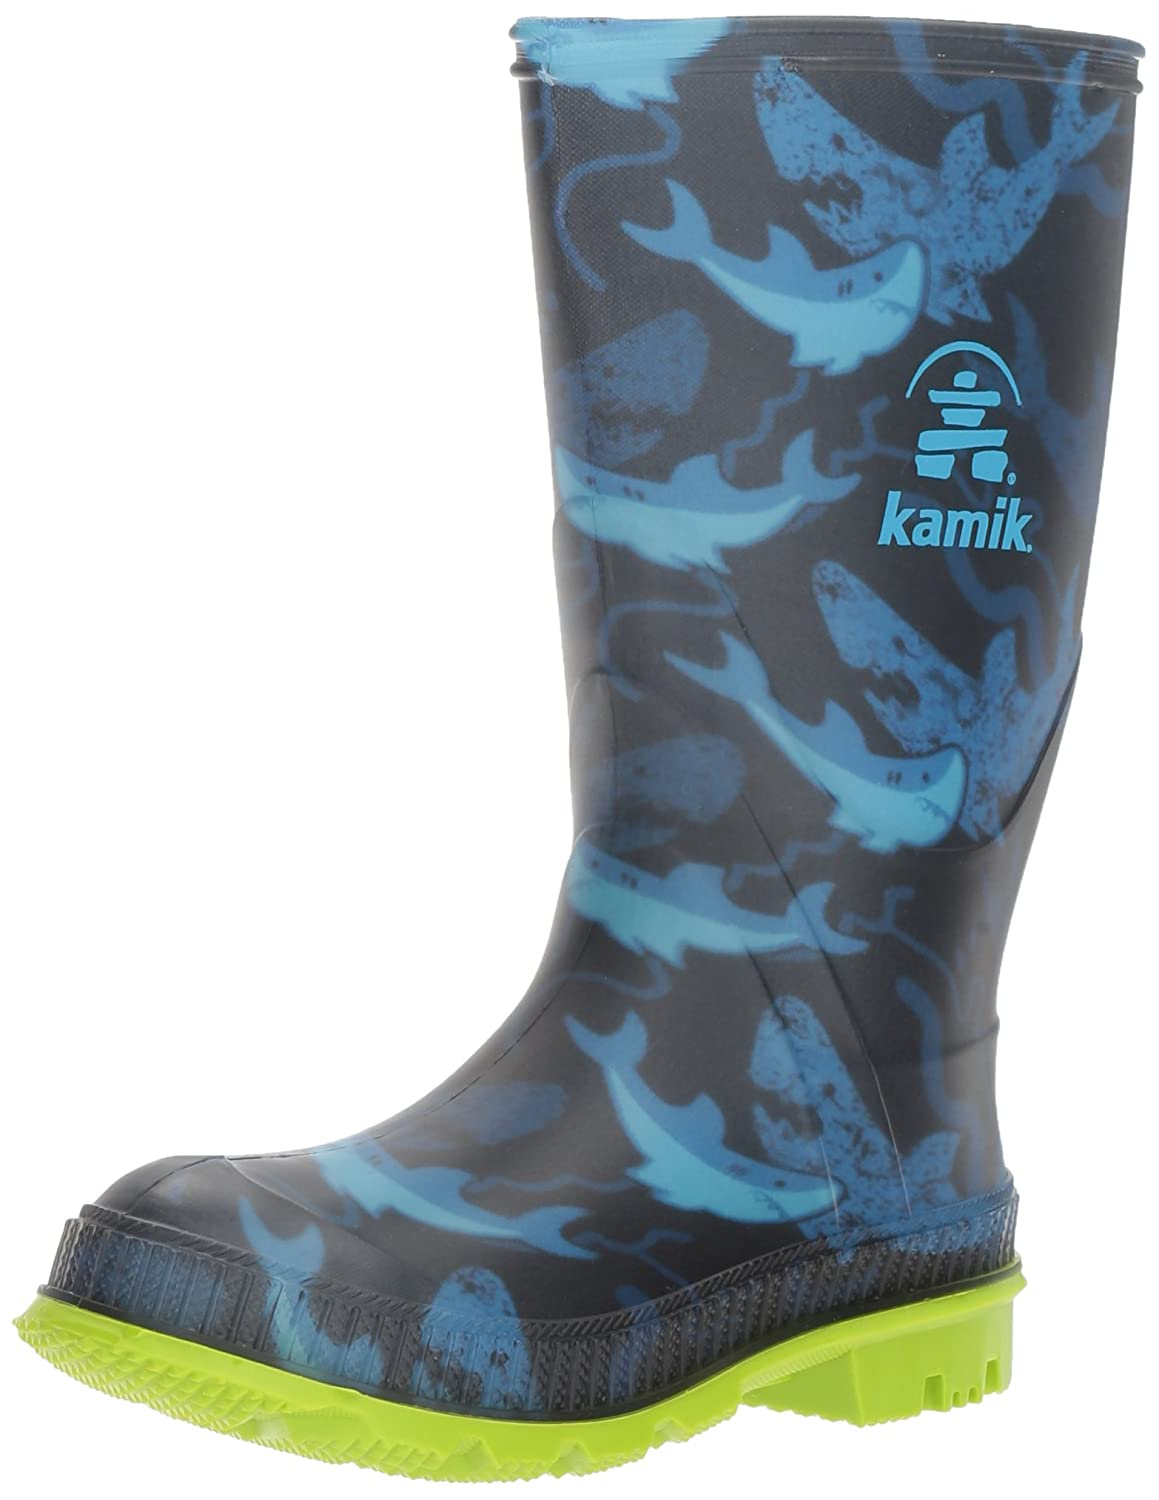 Kamik Boy's STOMP2 Rain Boot EK4725F